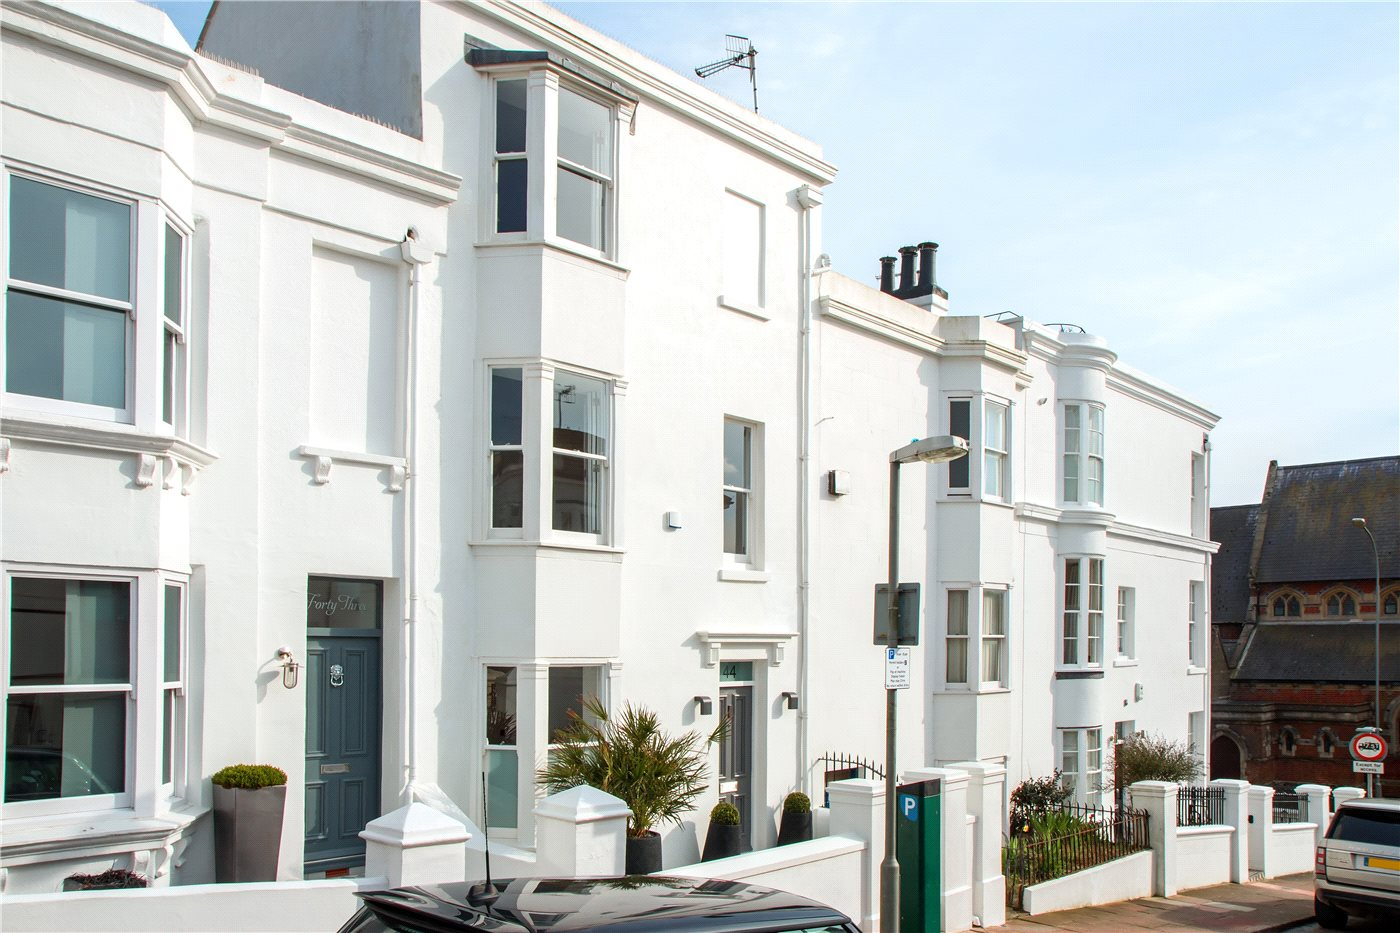 4 Bedrooms Terraced House for sale in Victoria Street, Brighton, East Sussex, BN1